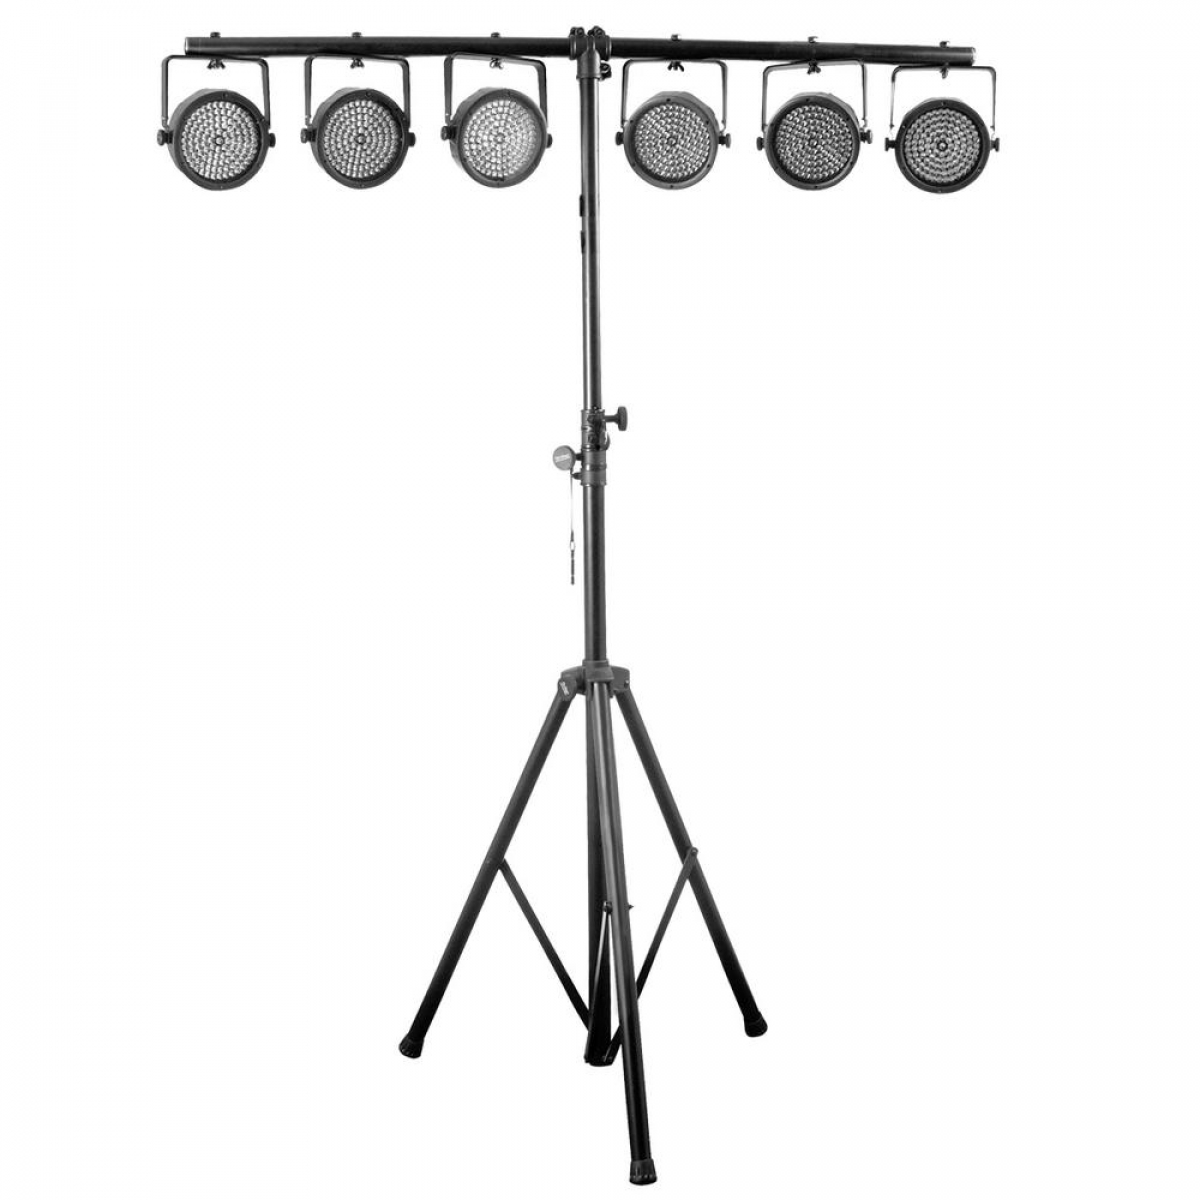 On-Stage LS7720QIK Quick-Connect u-mount Lighting Stand by The Music People Inc.